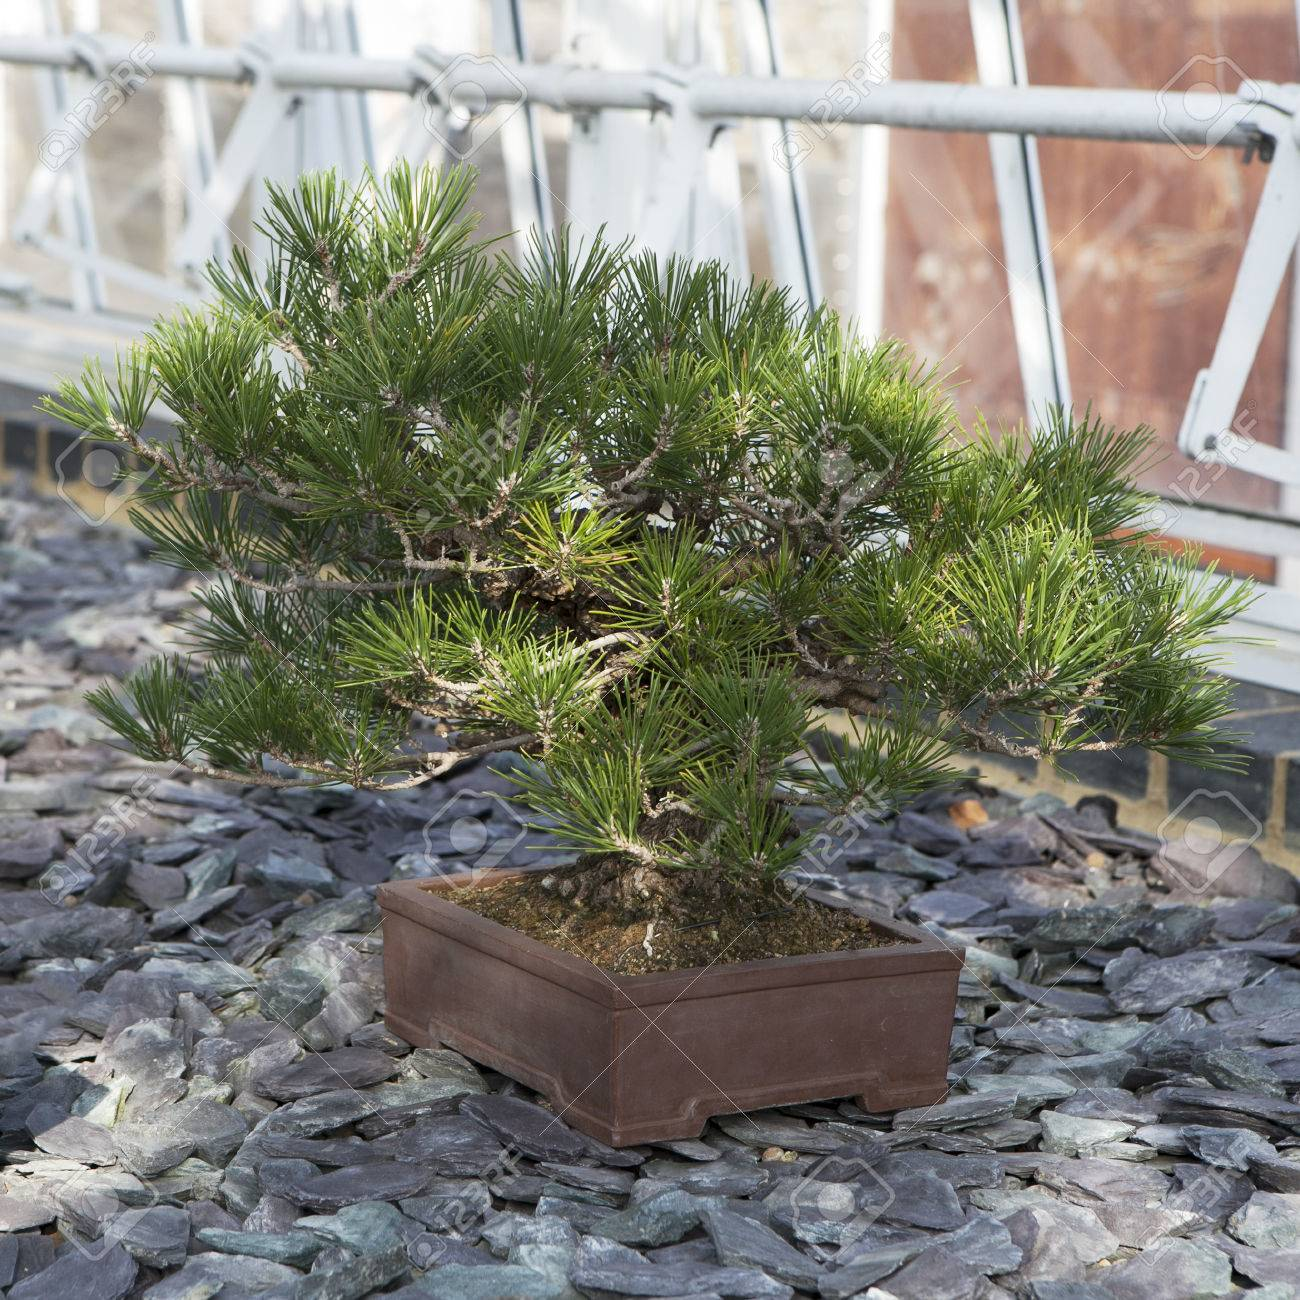 The Japanese Black Pine Bonsai Tree Pinus Thumbergii Stock Photo Picture And Royalty Free Image Image 72940088